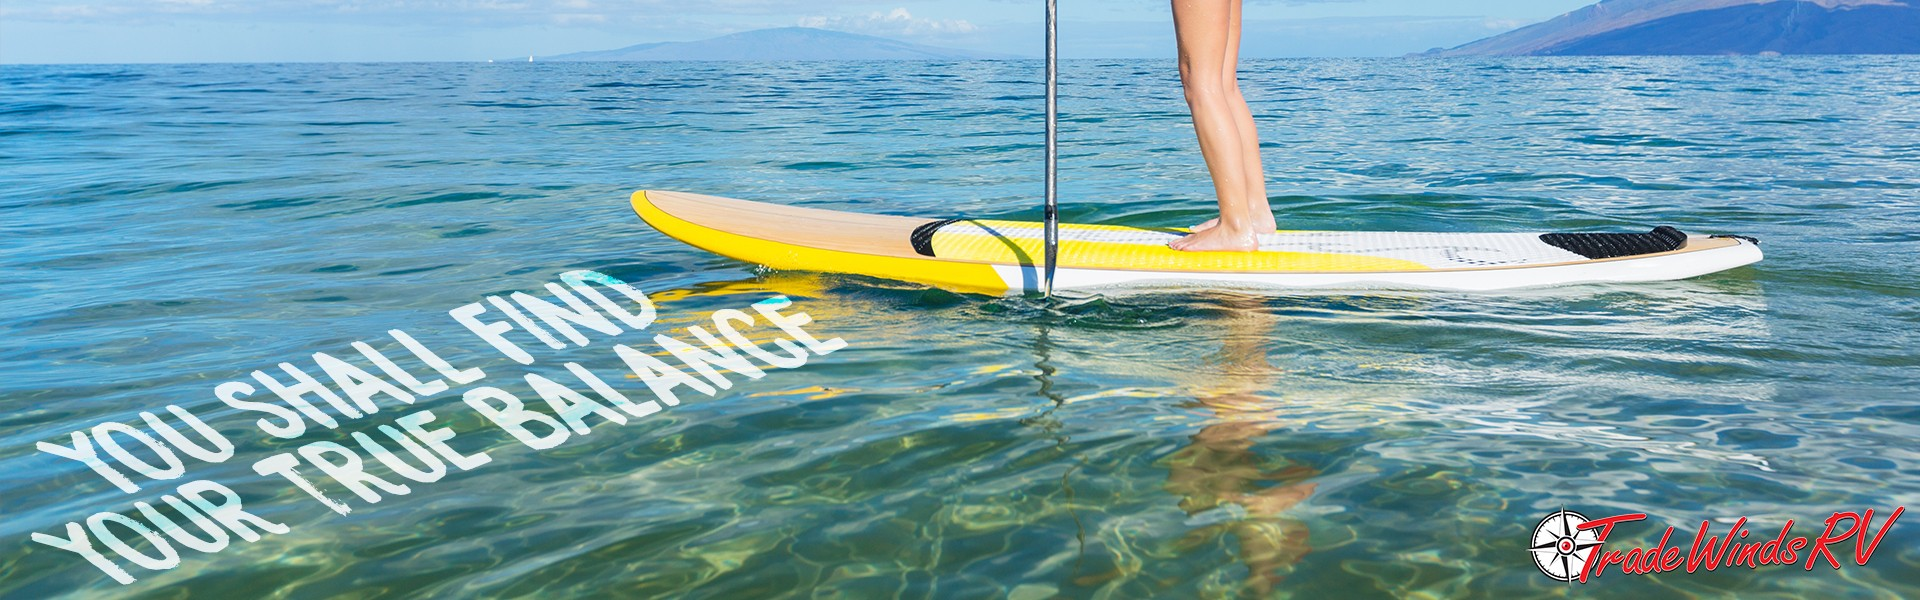 Paddleboarding: Tips and Travel Ideas  Tradewinds RV Blog